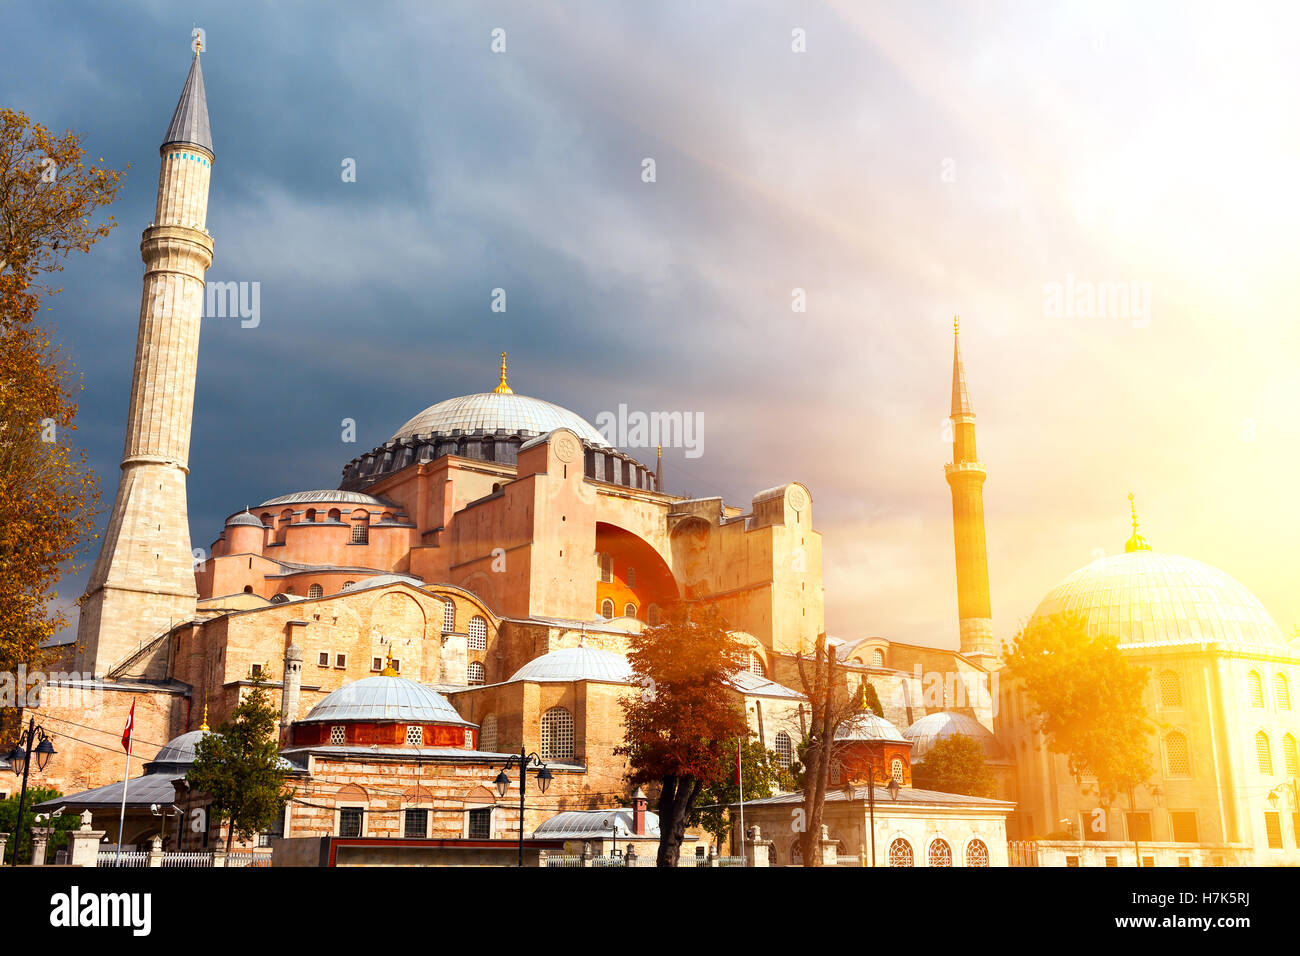 Hagia Sophia in Istanbul. The world famous monument of Byzantine architecture. View of the St. Sophia Cathedral - Stock Image